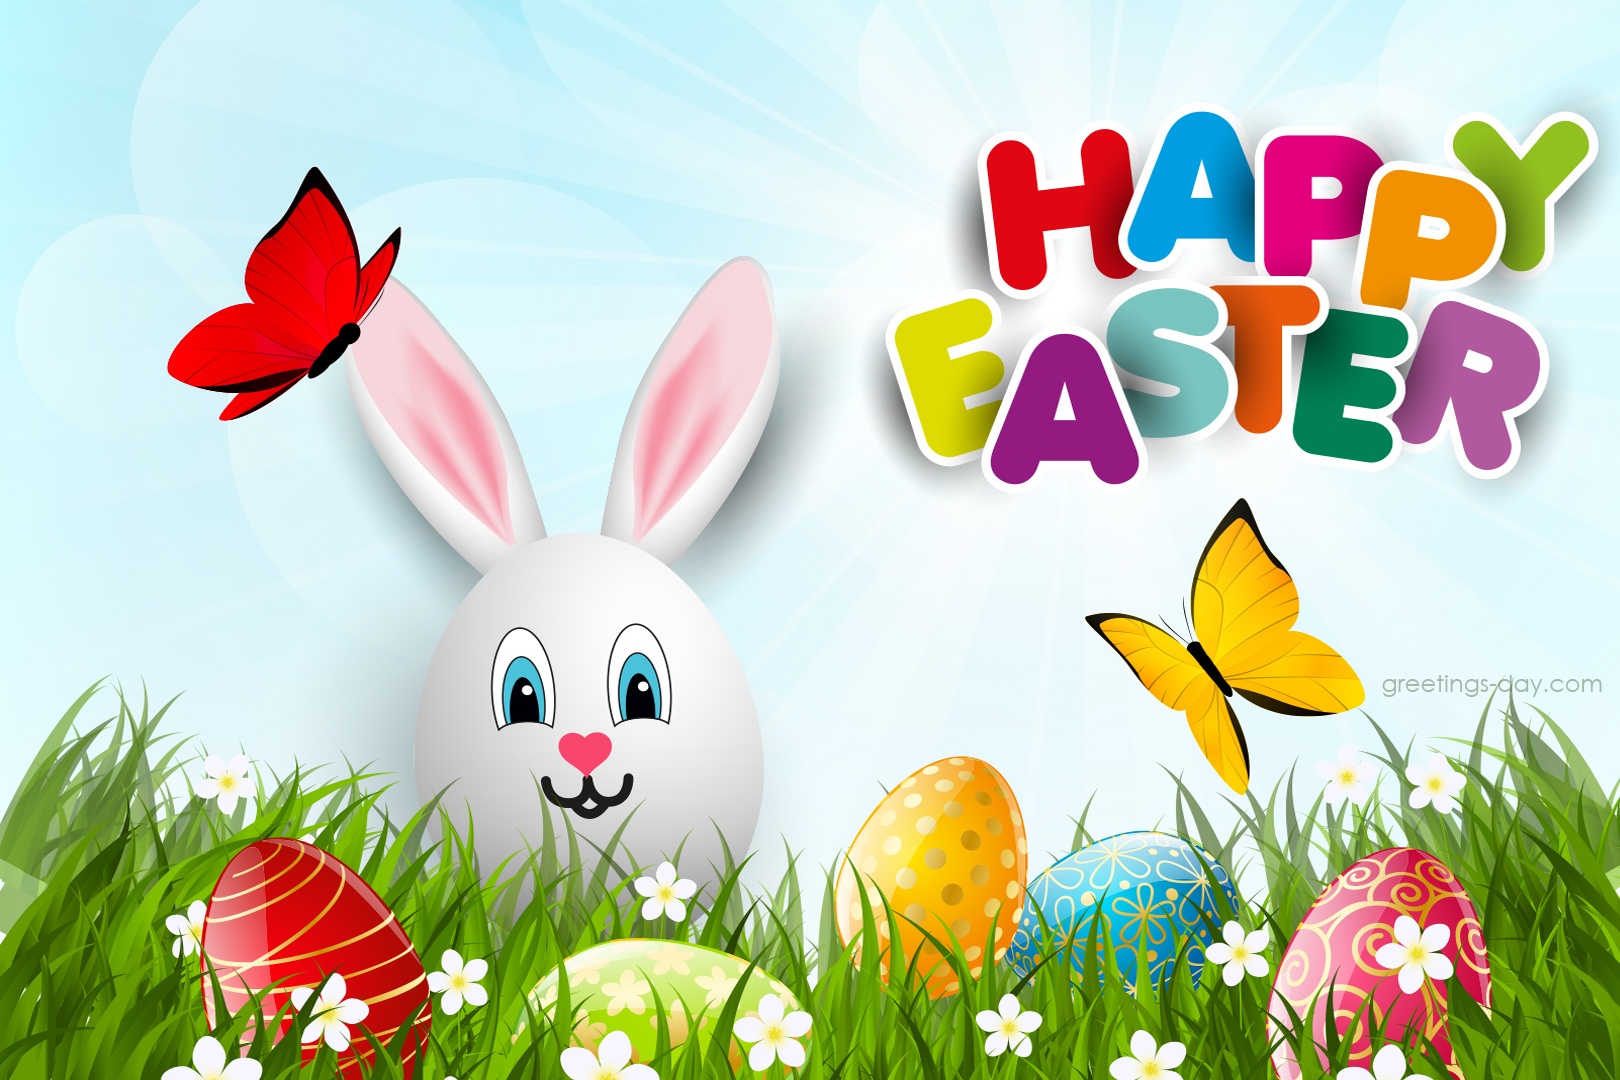 Http Greetings Day Com Funny Easter Bunny Pictures Html